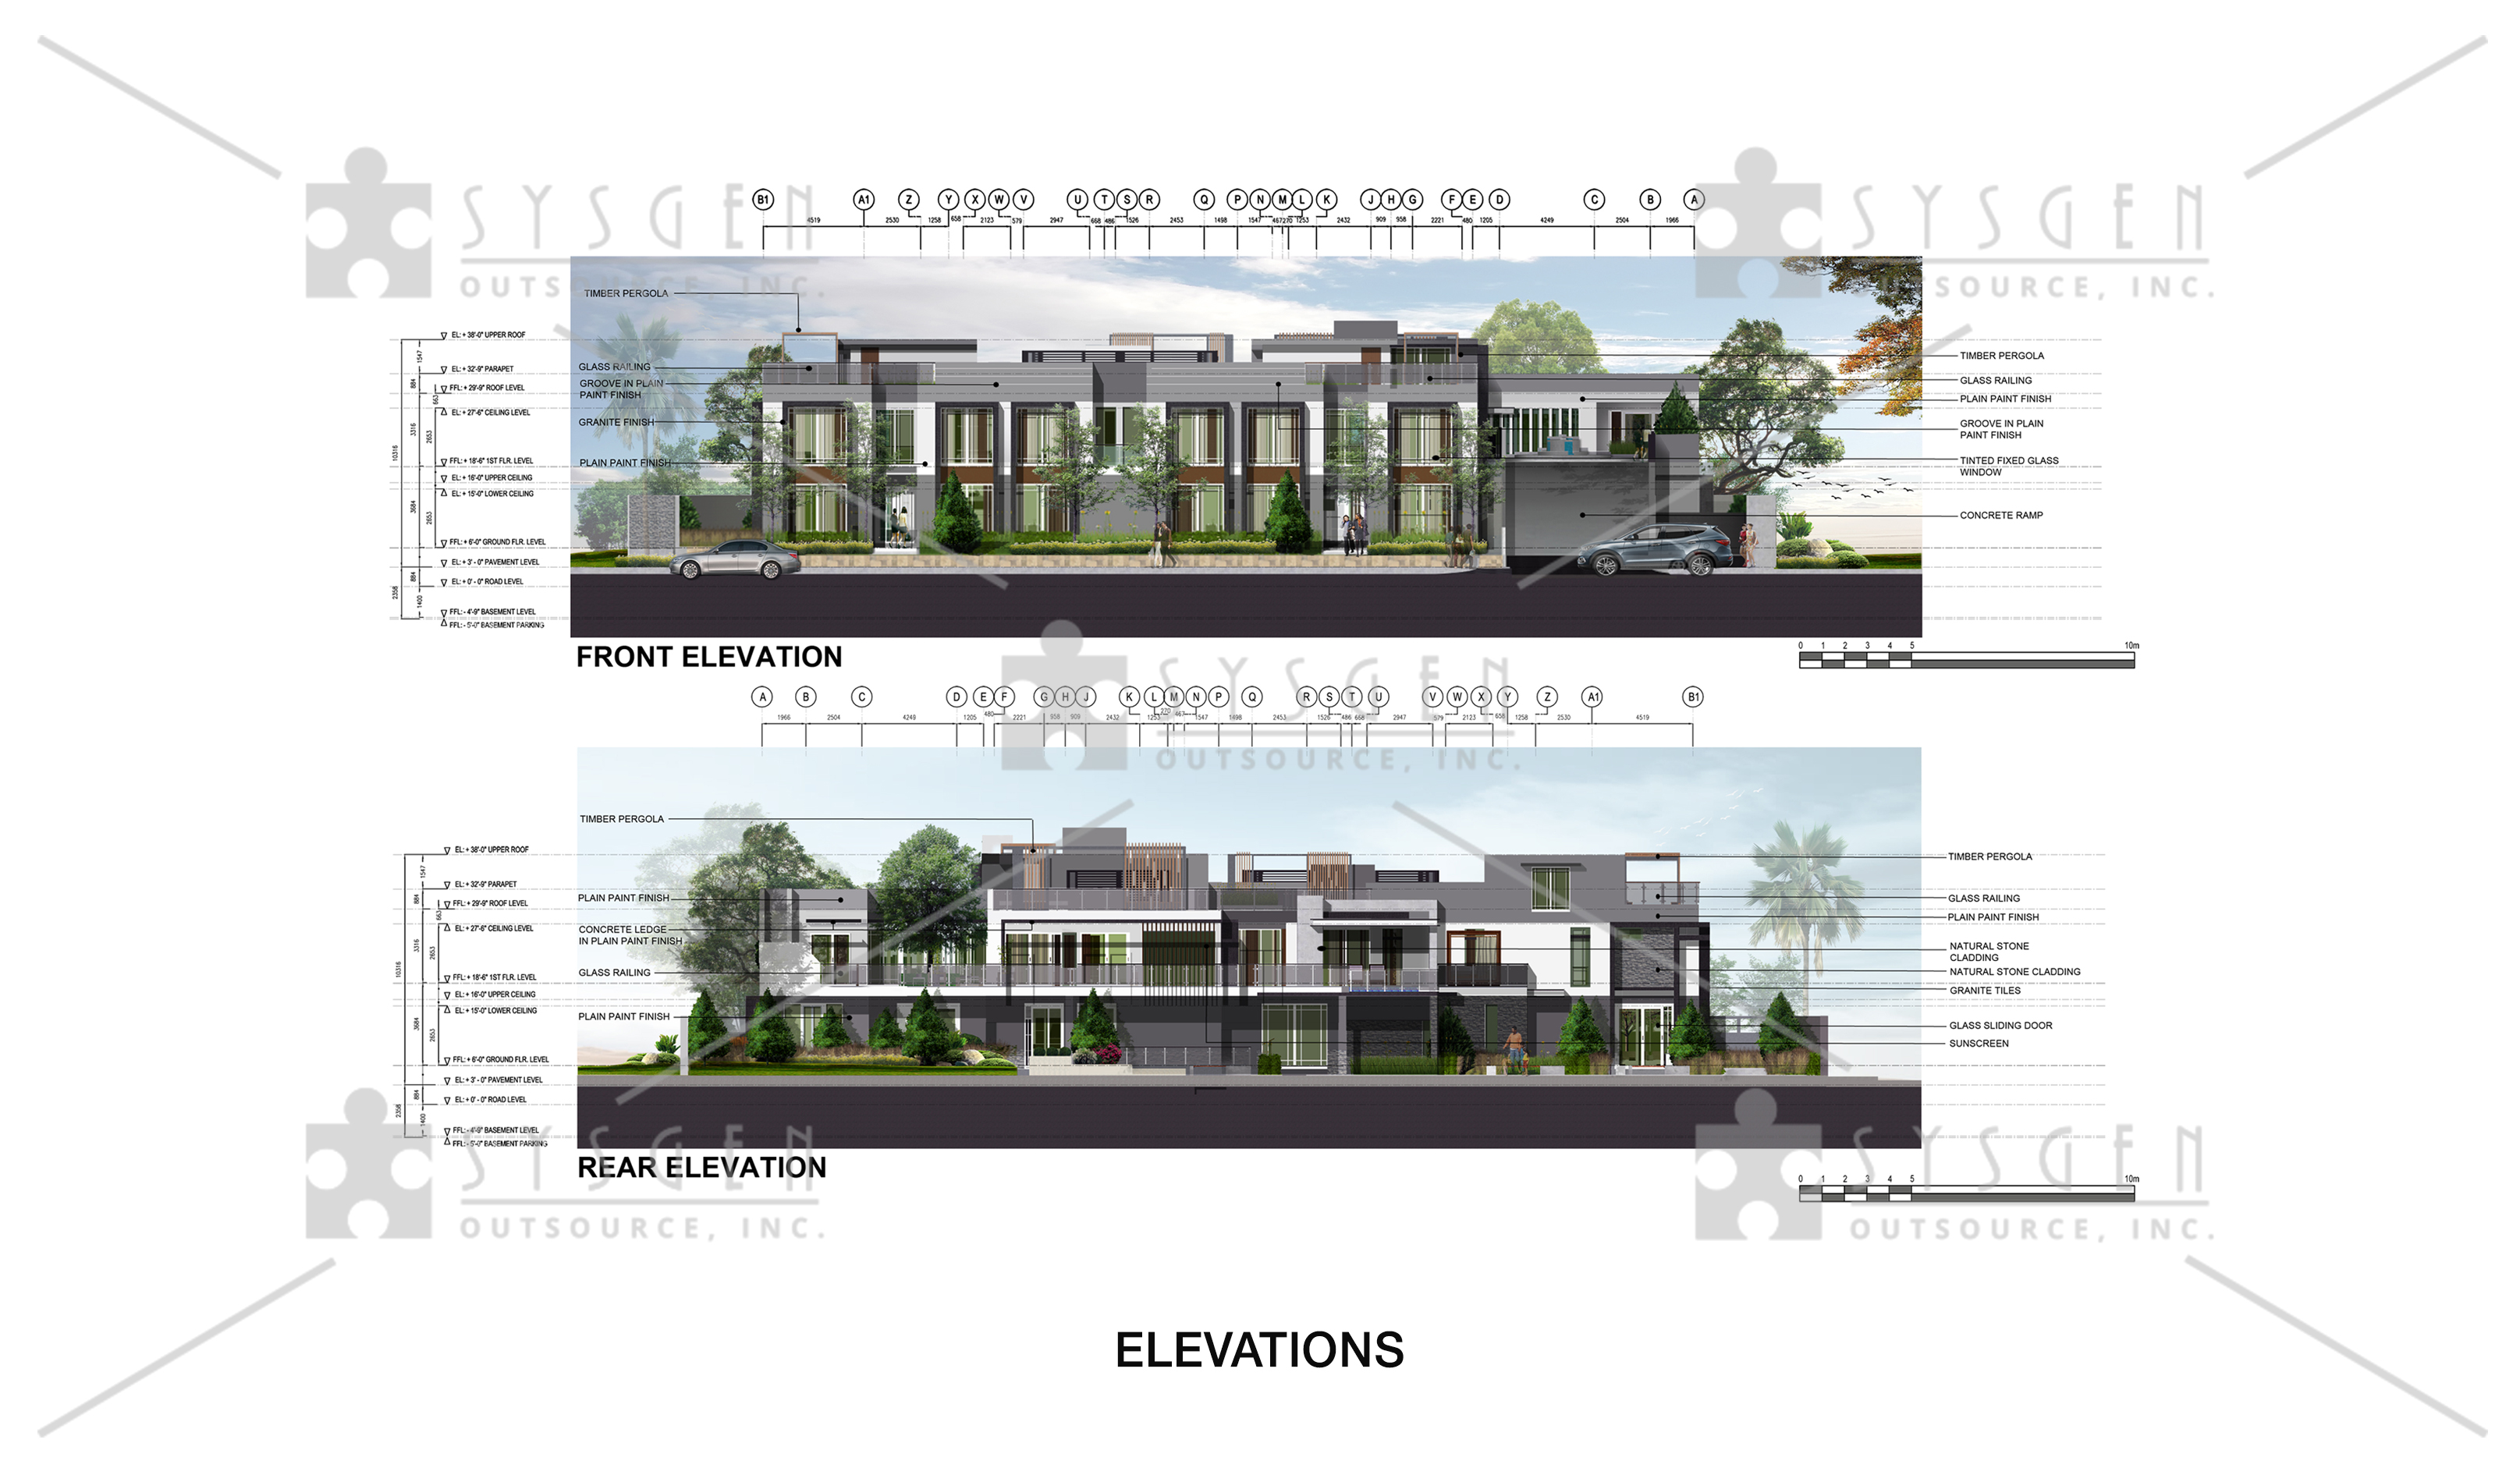 sysgen-outsource-cad-outsourcing-services-sketch-up-residential_villa-jj10